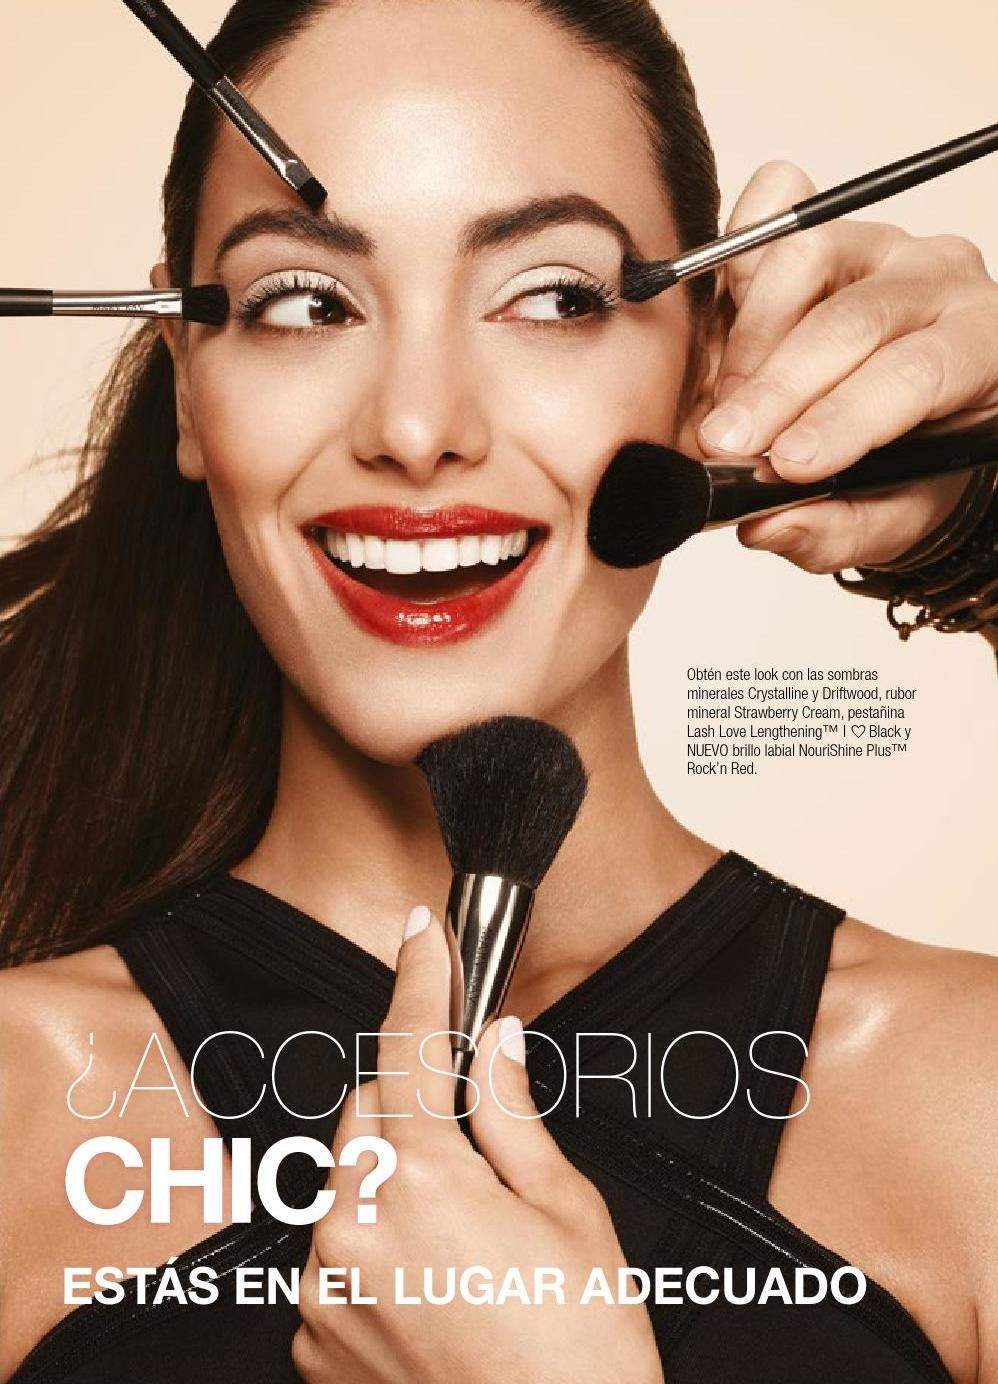 Libros De Maquillaje Profesional Imajen De Colombia New Book The Look February 15 16 Colombia